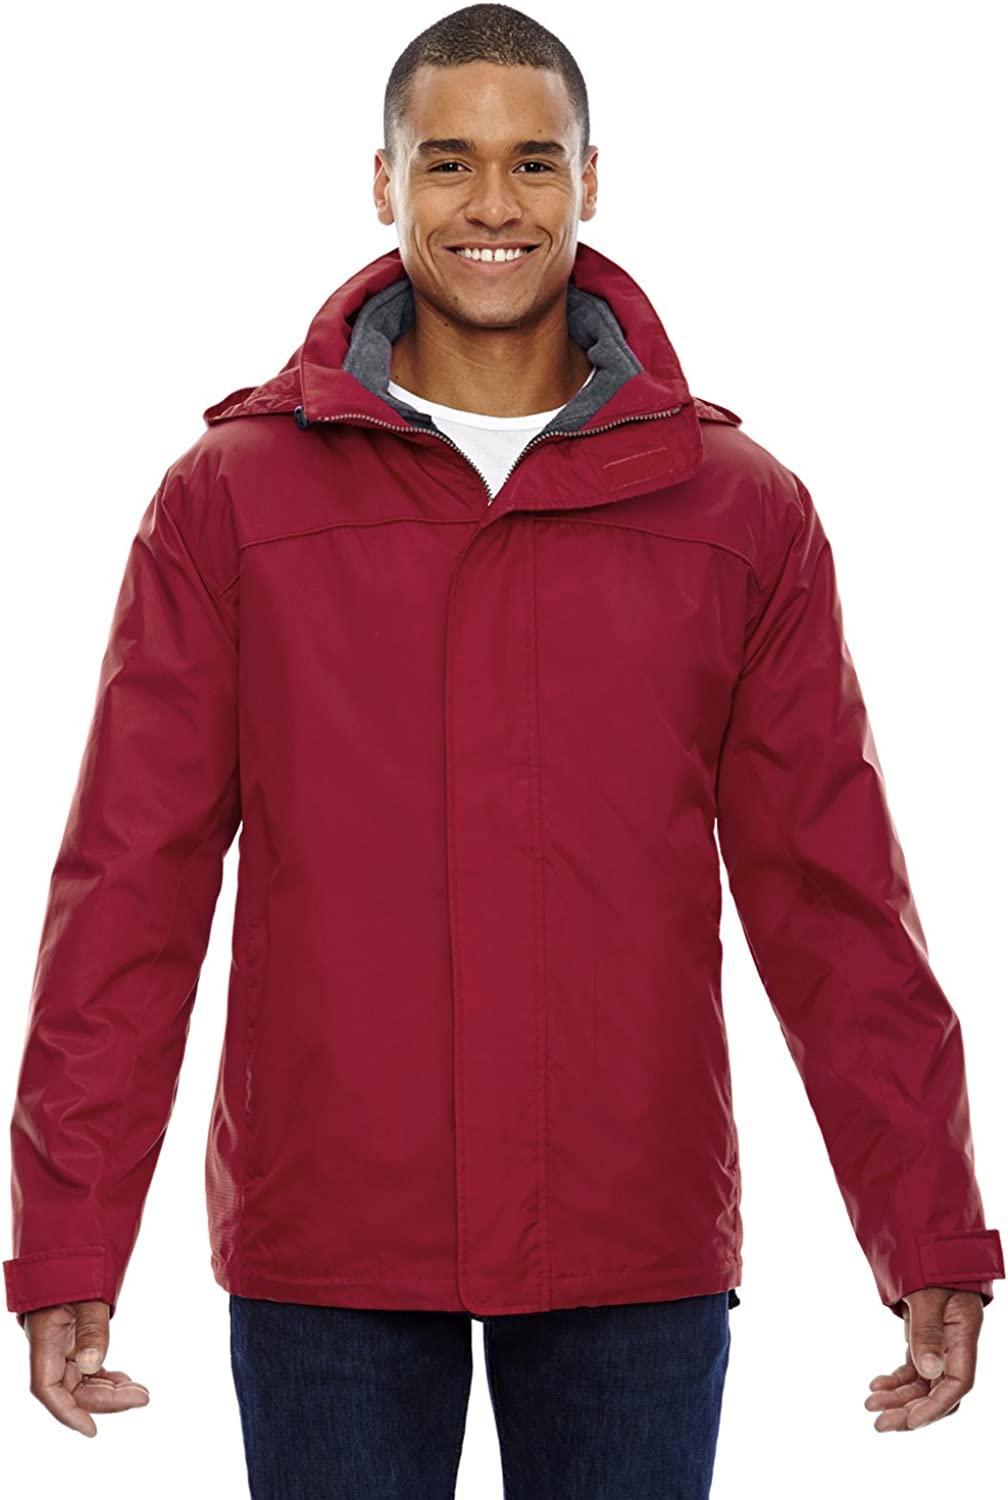 Adult 3-in-1 Jacket MOLTEN rot 751 XS